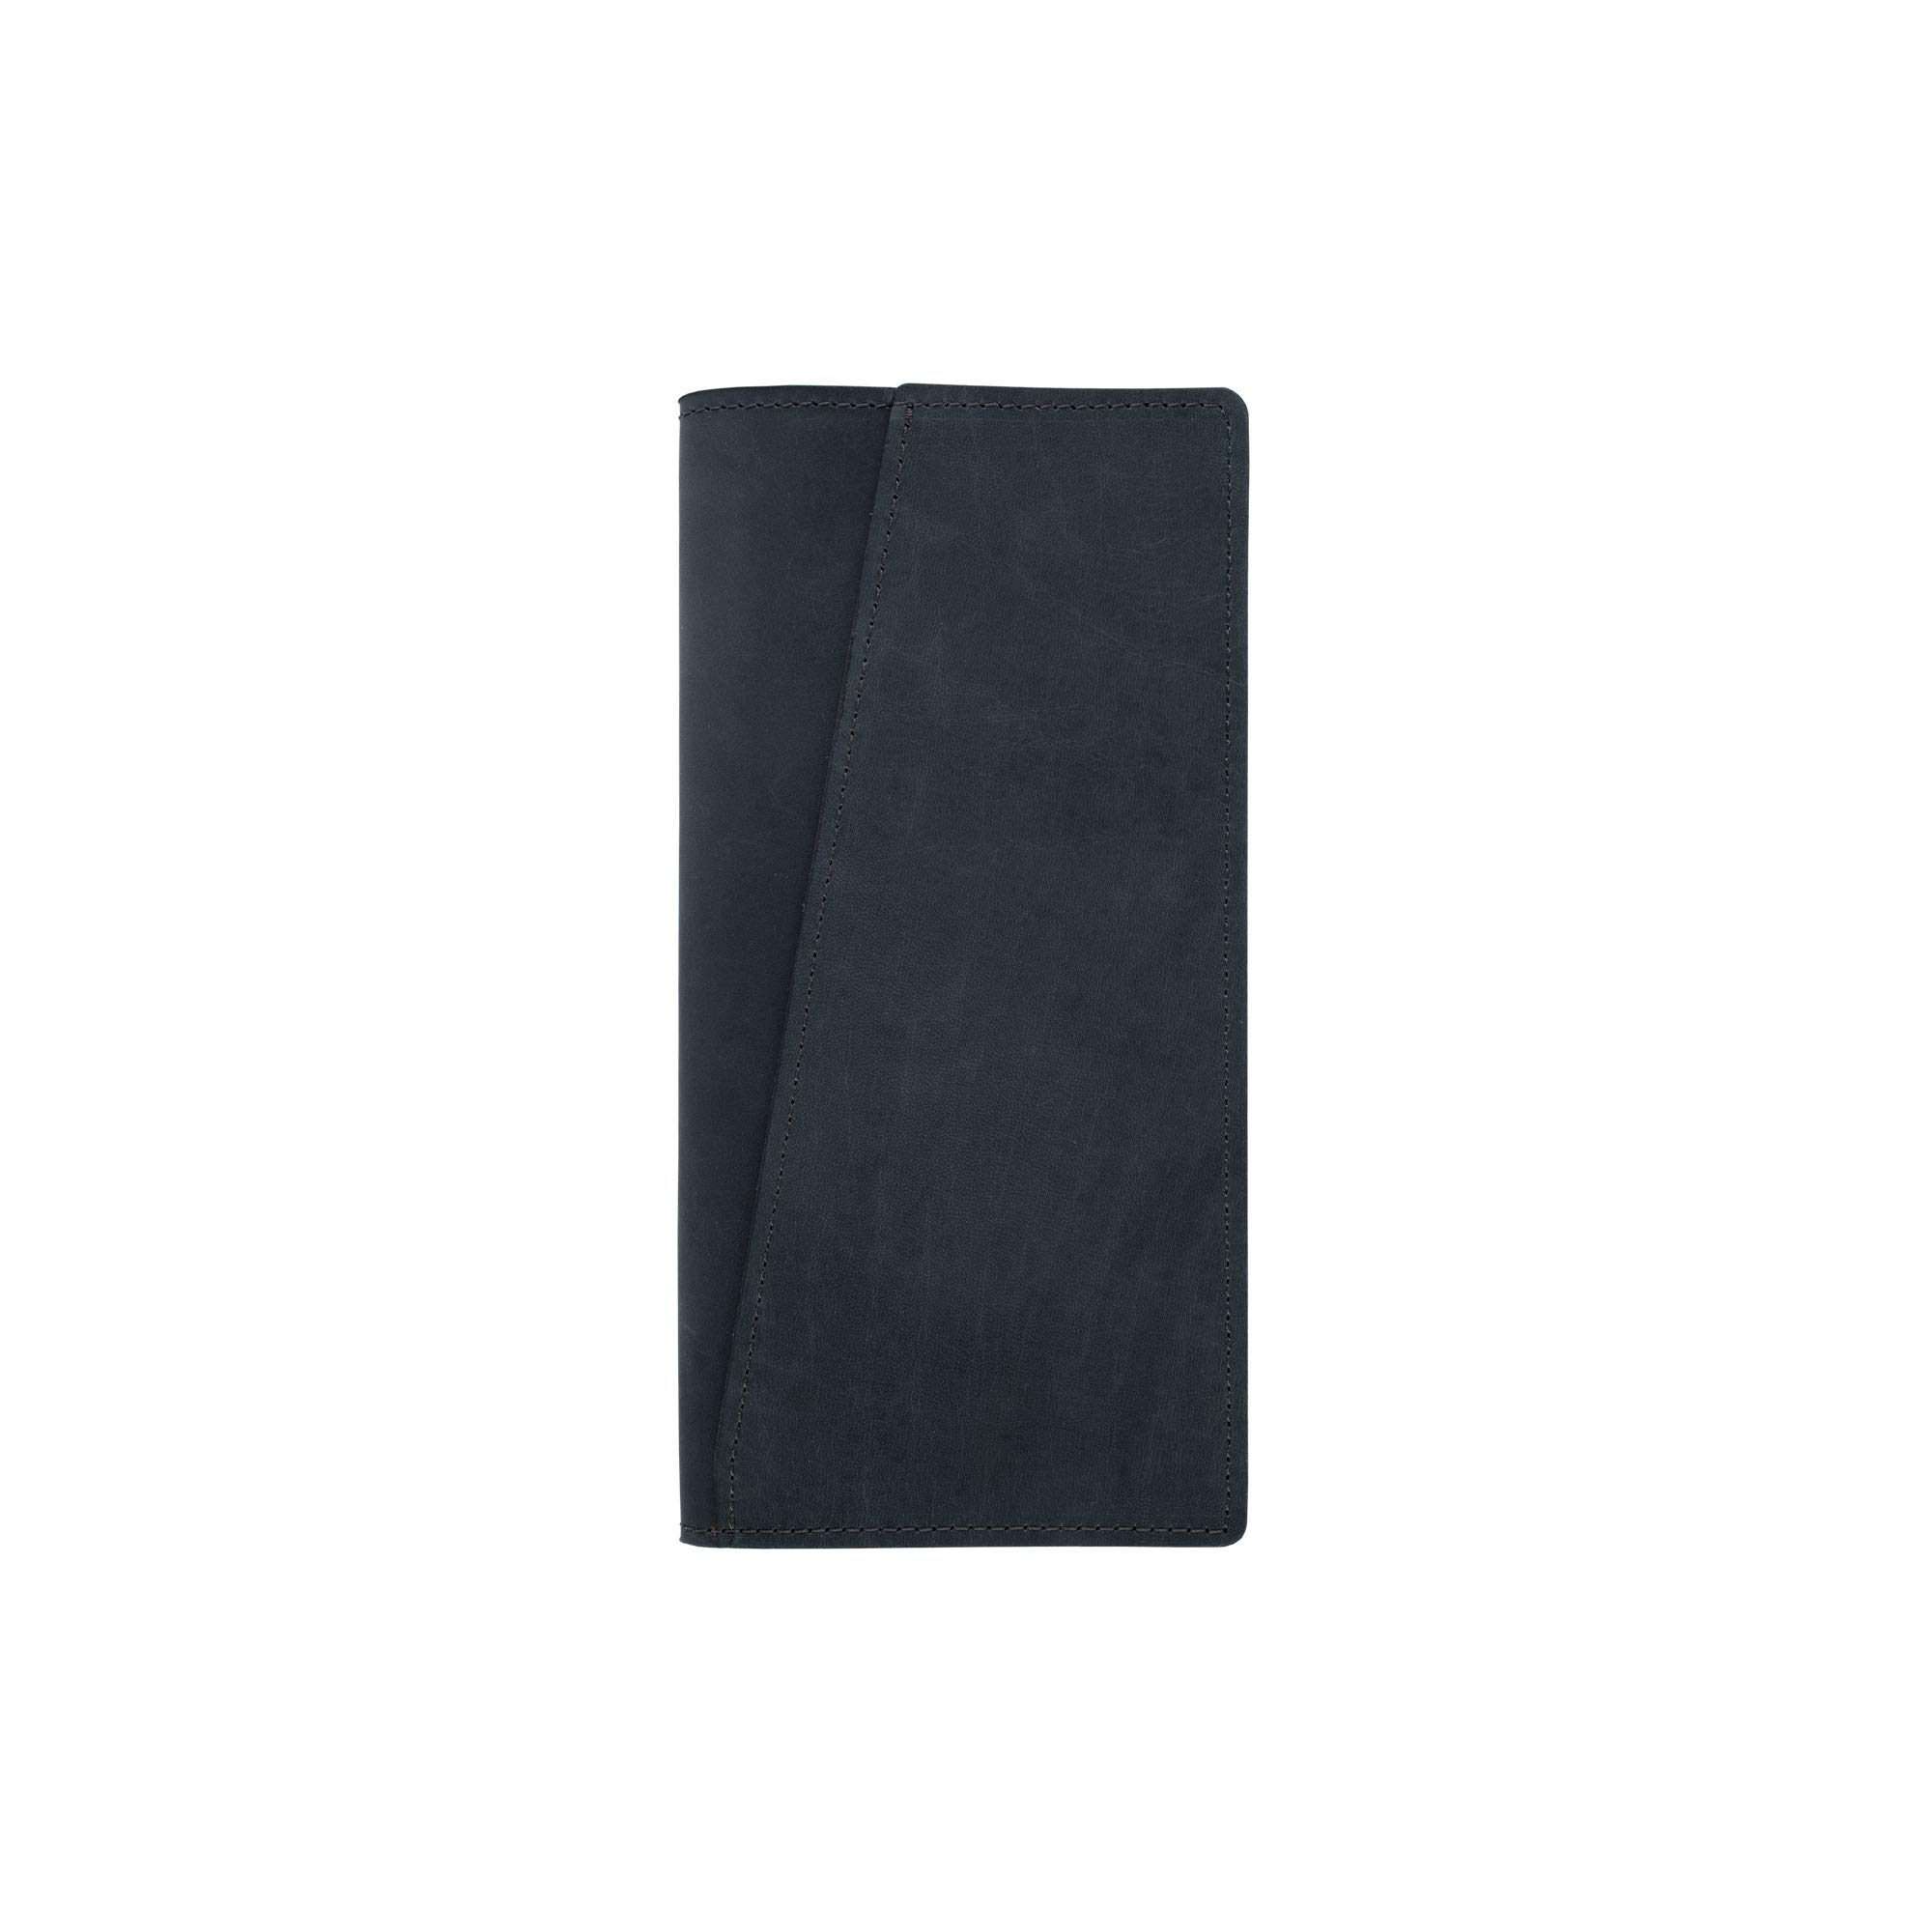 SLATE COLLECTION Lakeway Travel Wallet, Full-grain Leather (Indigo)